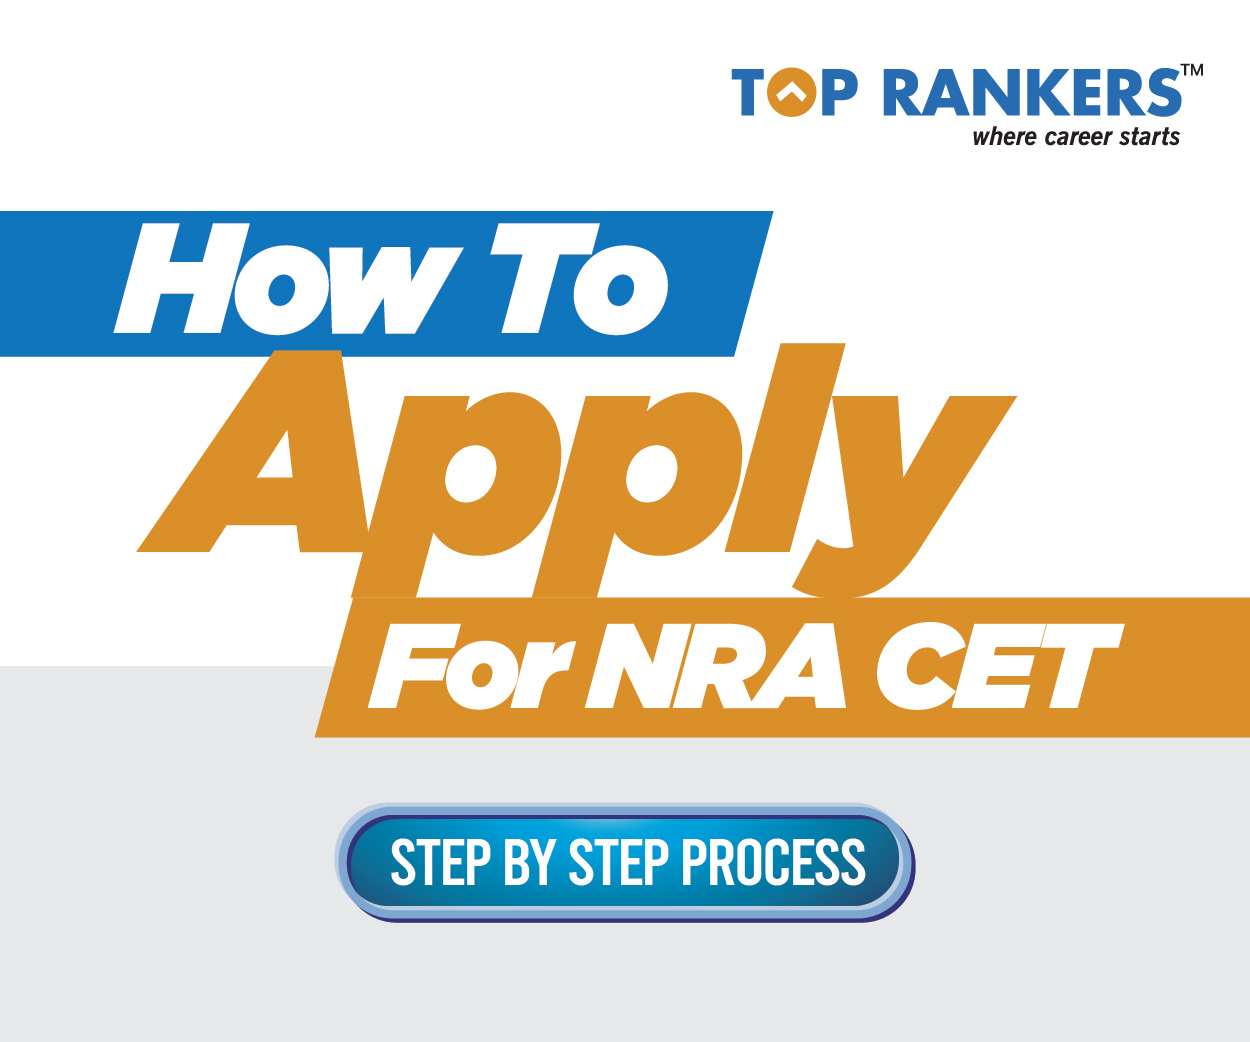 How to Apply for NRA CET